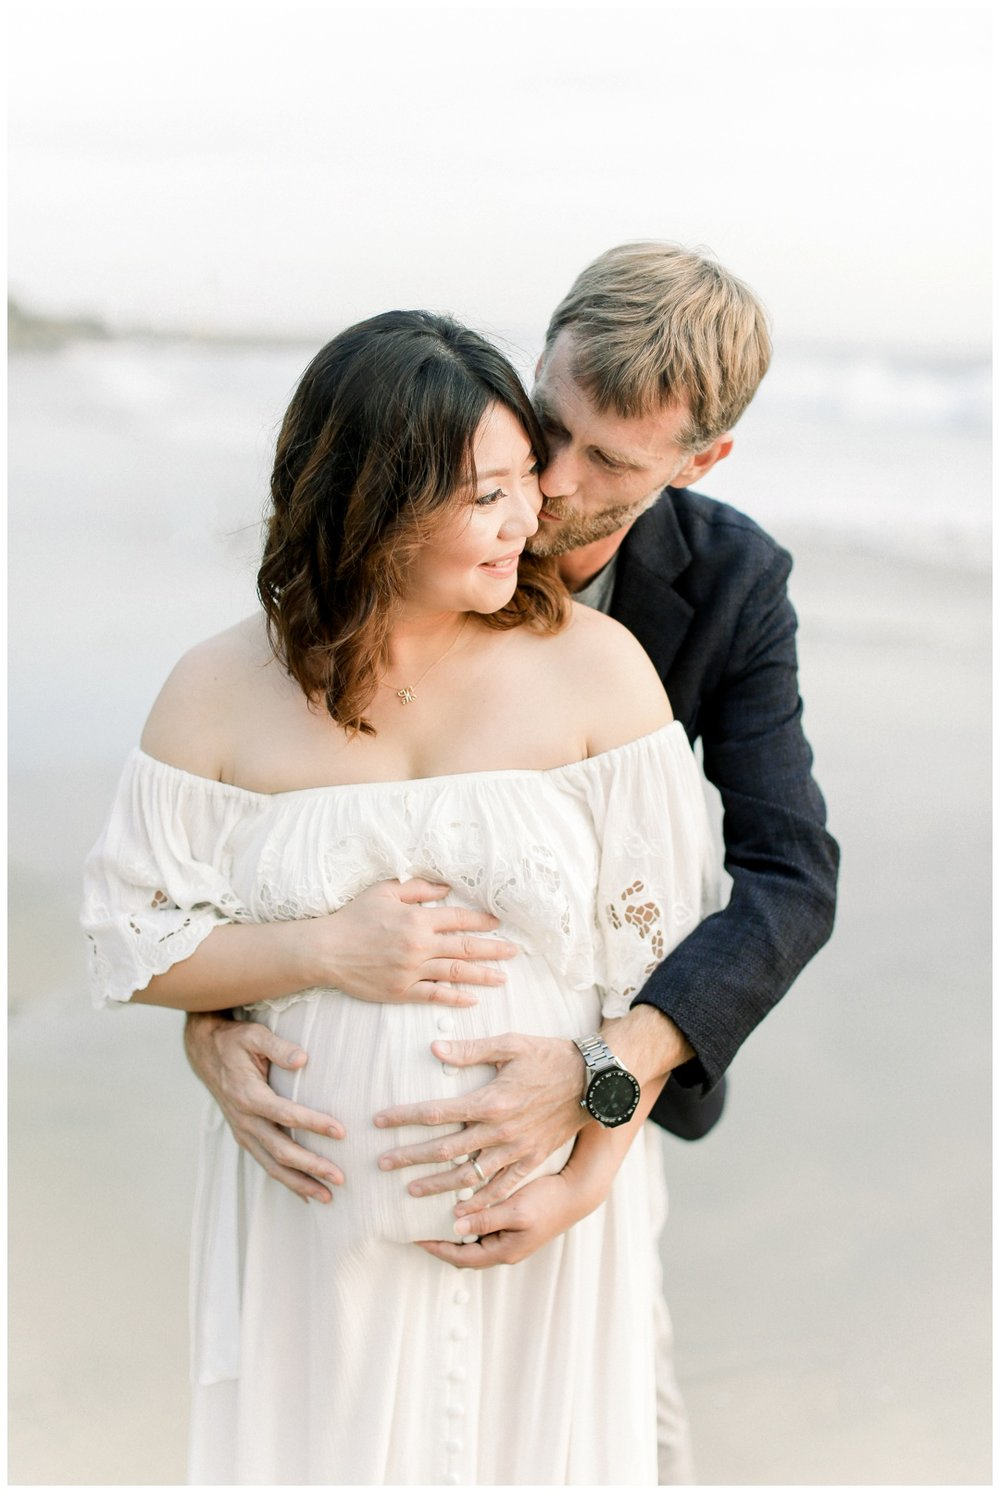 Newport_Beach_Maternity_Photographer_The_Koontz_Maternity_Session_Newport_Beach_Maternity_Photography_Orange_County_Photography_Cori_Kleckner_Photography_Orange_County_Beach_Photography_The_Ritz_Carlton_Laguna_Niguel_Resort_ Maternity_Session__1740.jpg